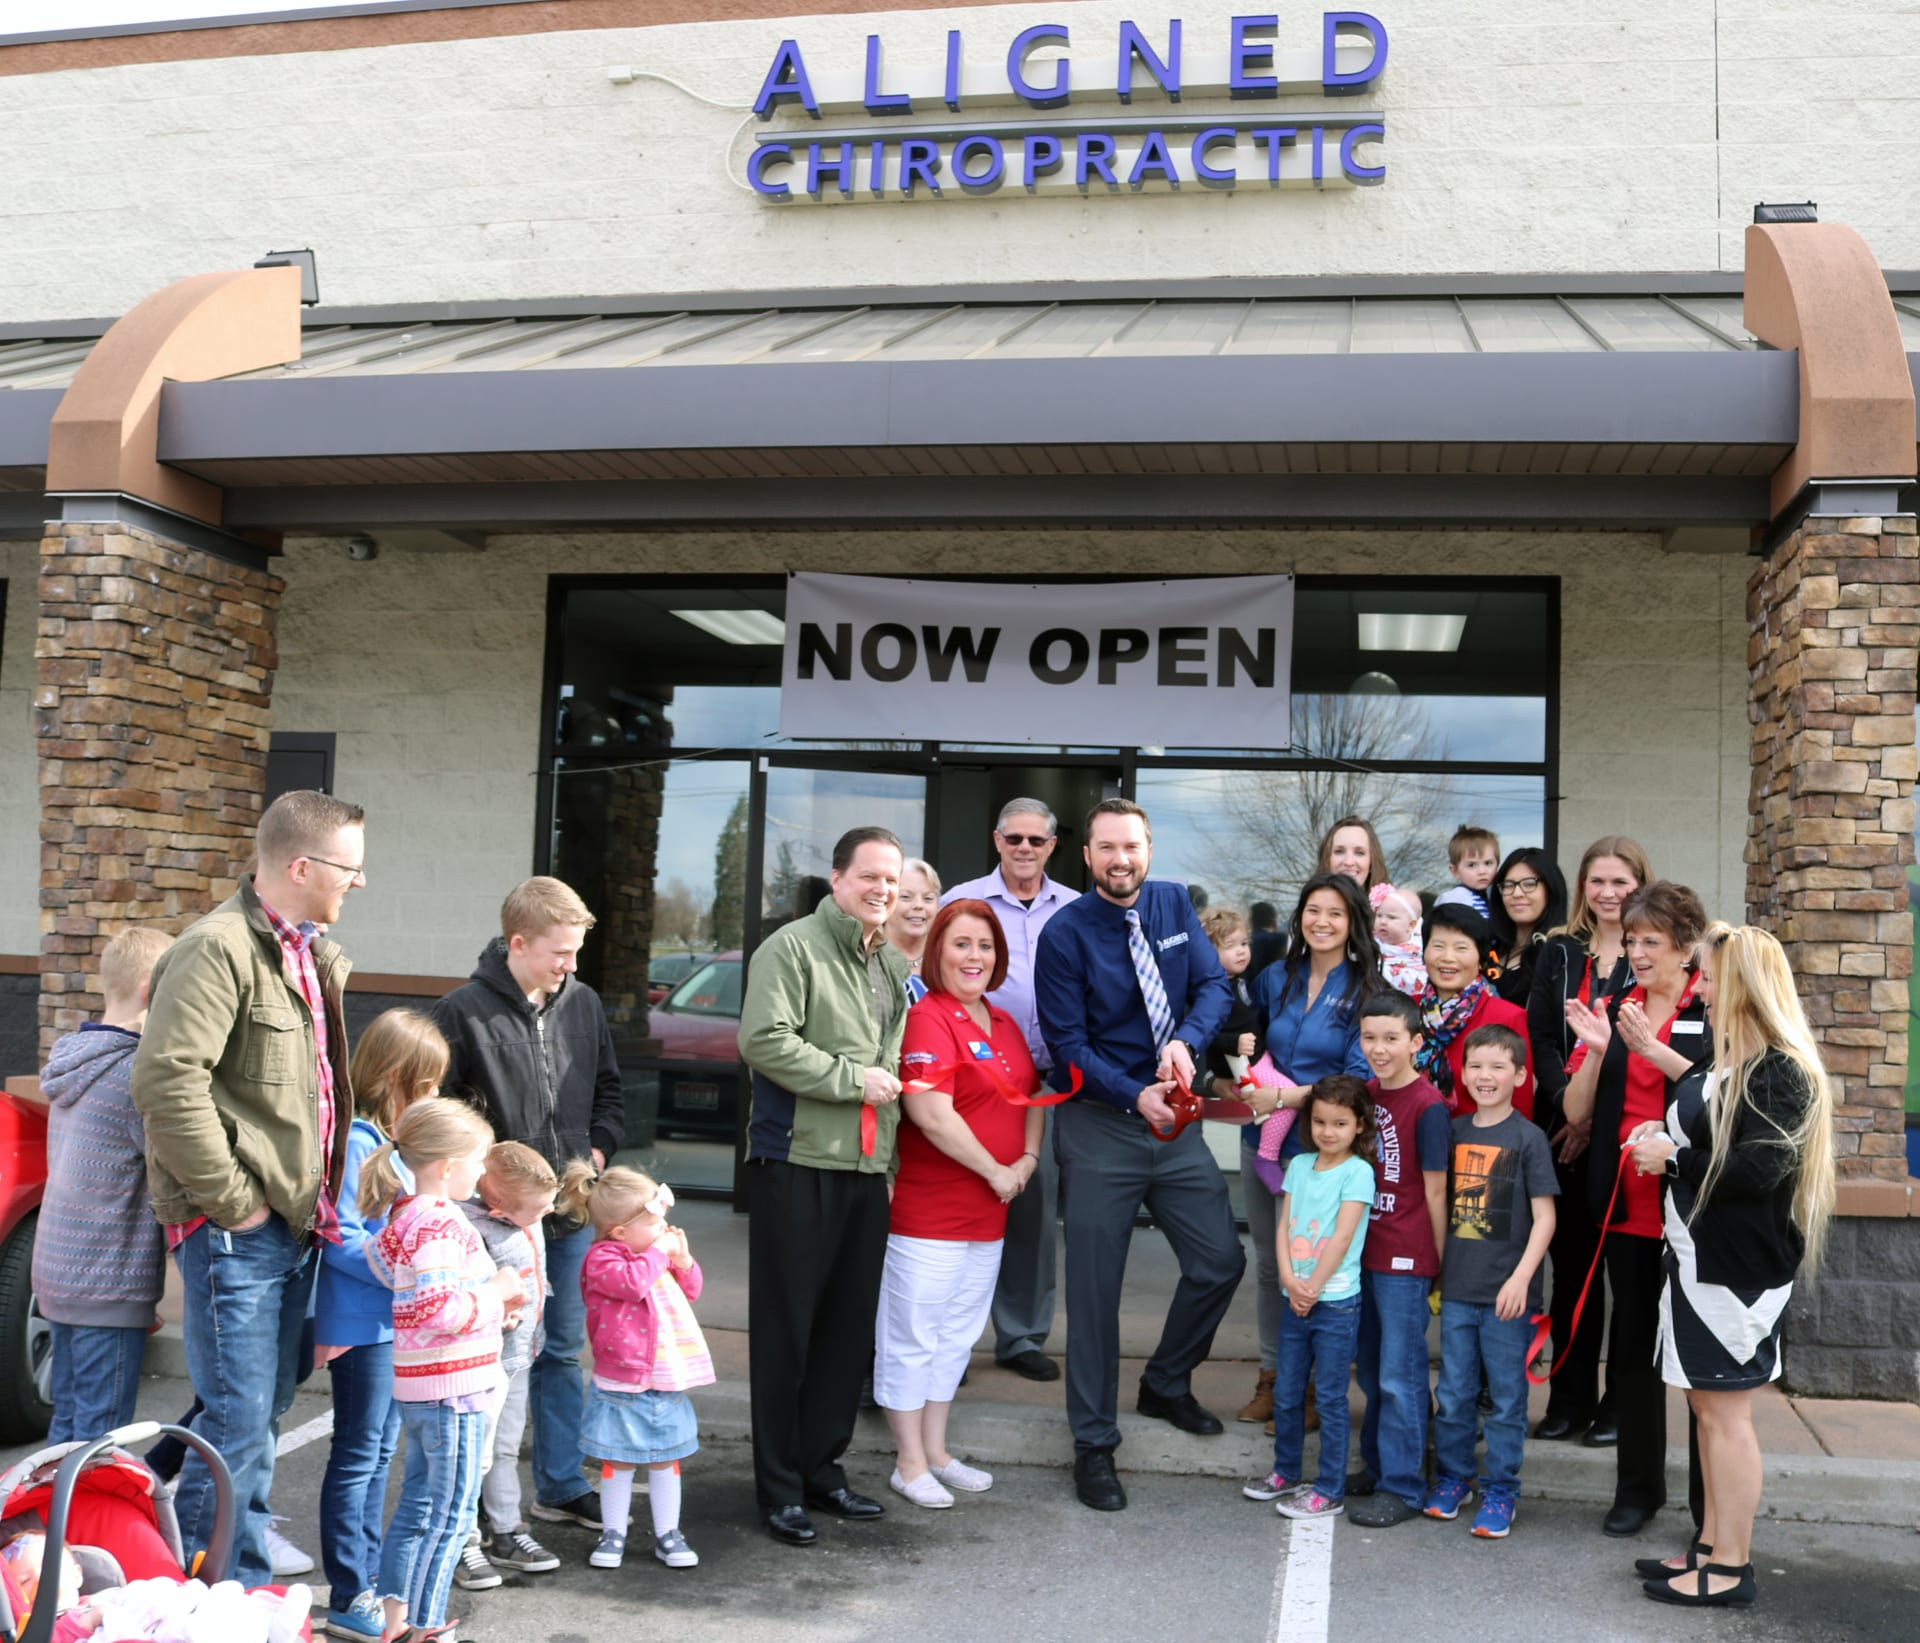 4-Aligned-Family-Chiropractic-ribbon-cutting-w1920.jpg